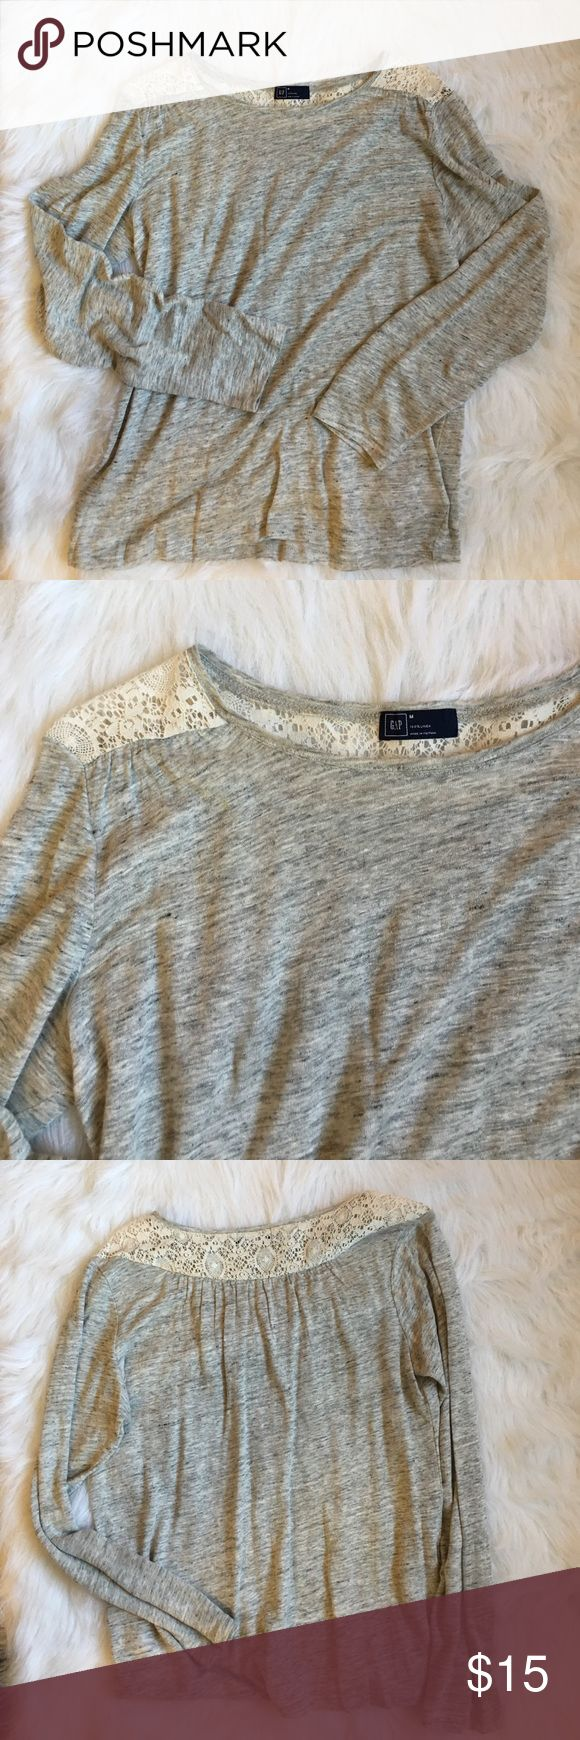 Lightweight long sleeve tee Really cute top. Somewhat sheer. Pretty lace detail. EUC GAP Tops Tees - Long Sleeve